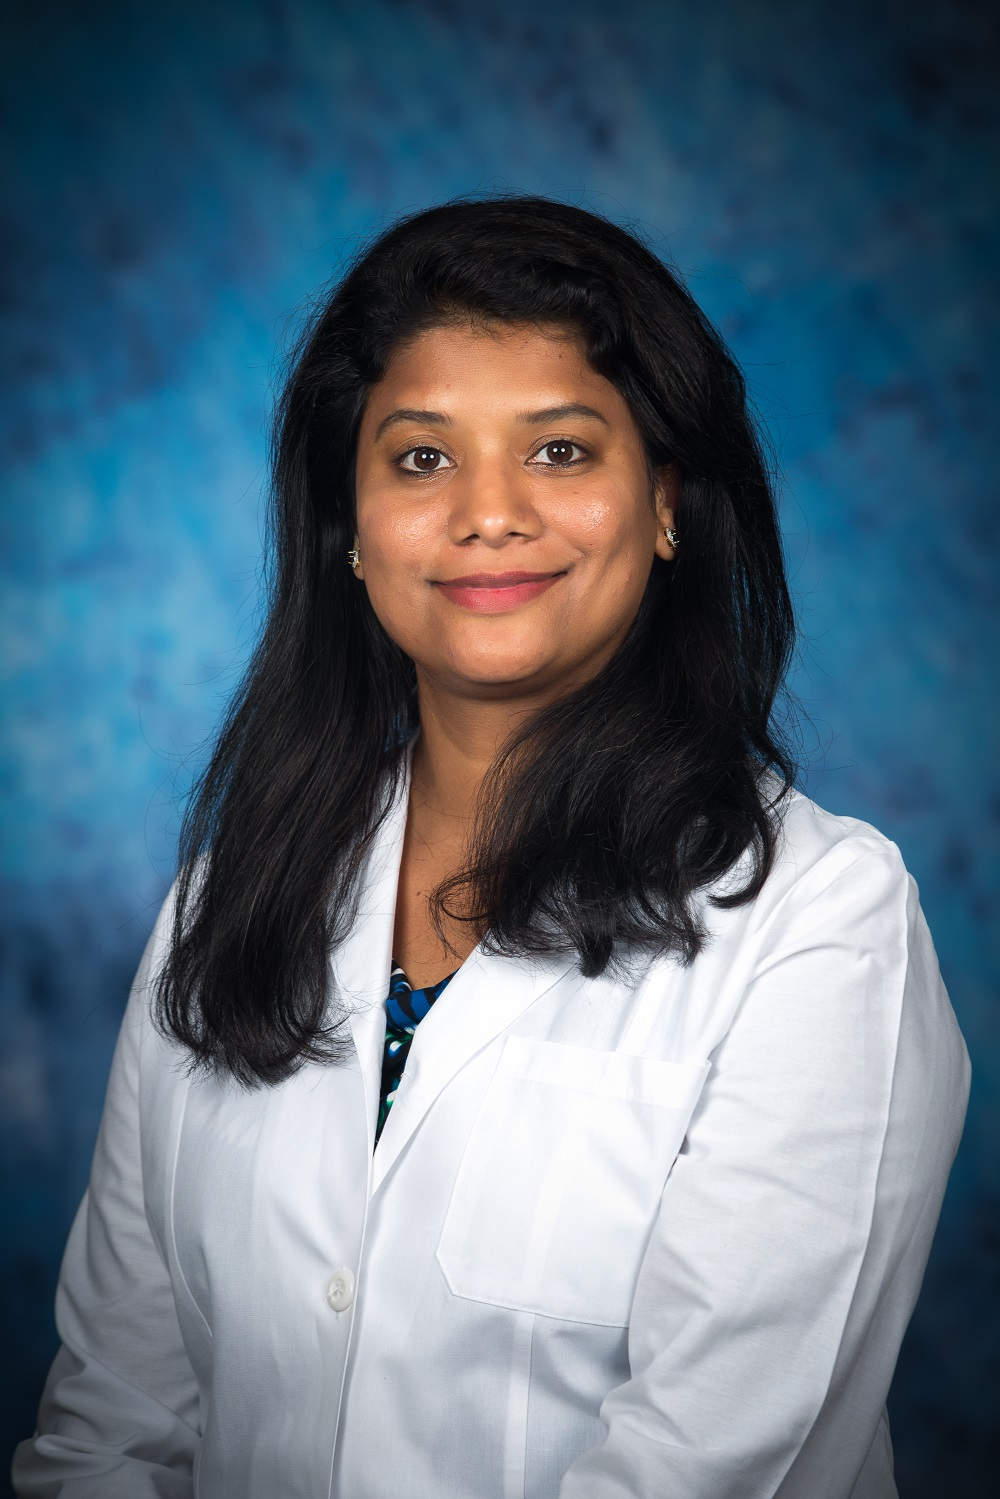 Lekshmi Seemanthini, MD